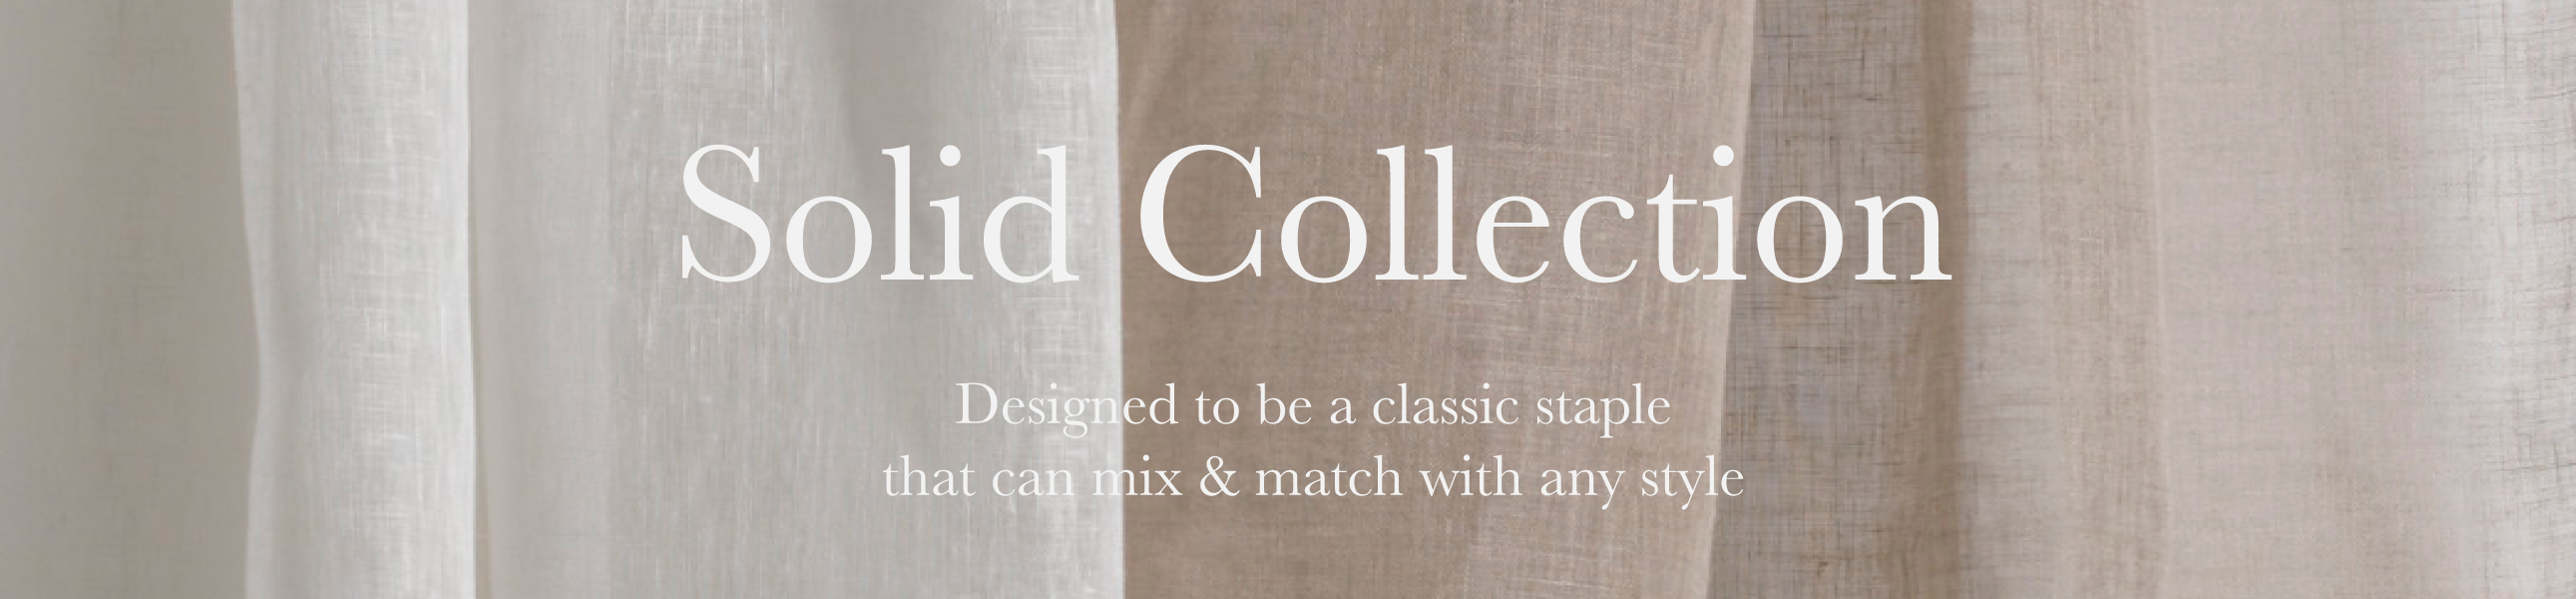 cd-solid-collection-banner.jpg